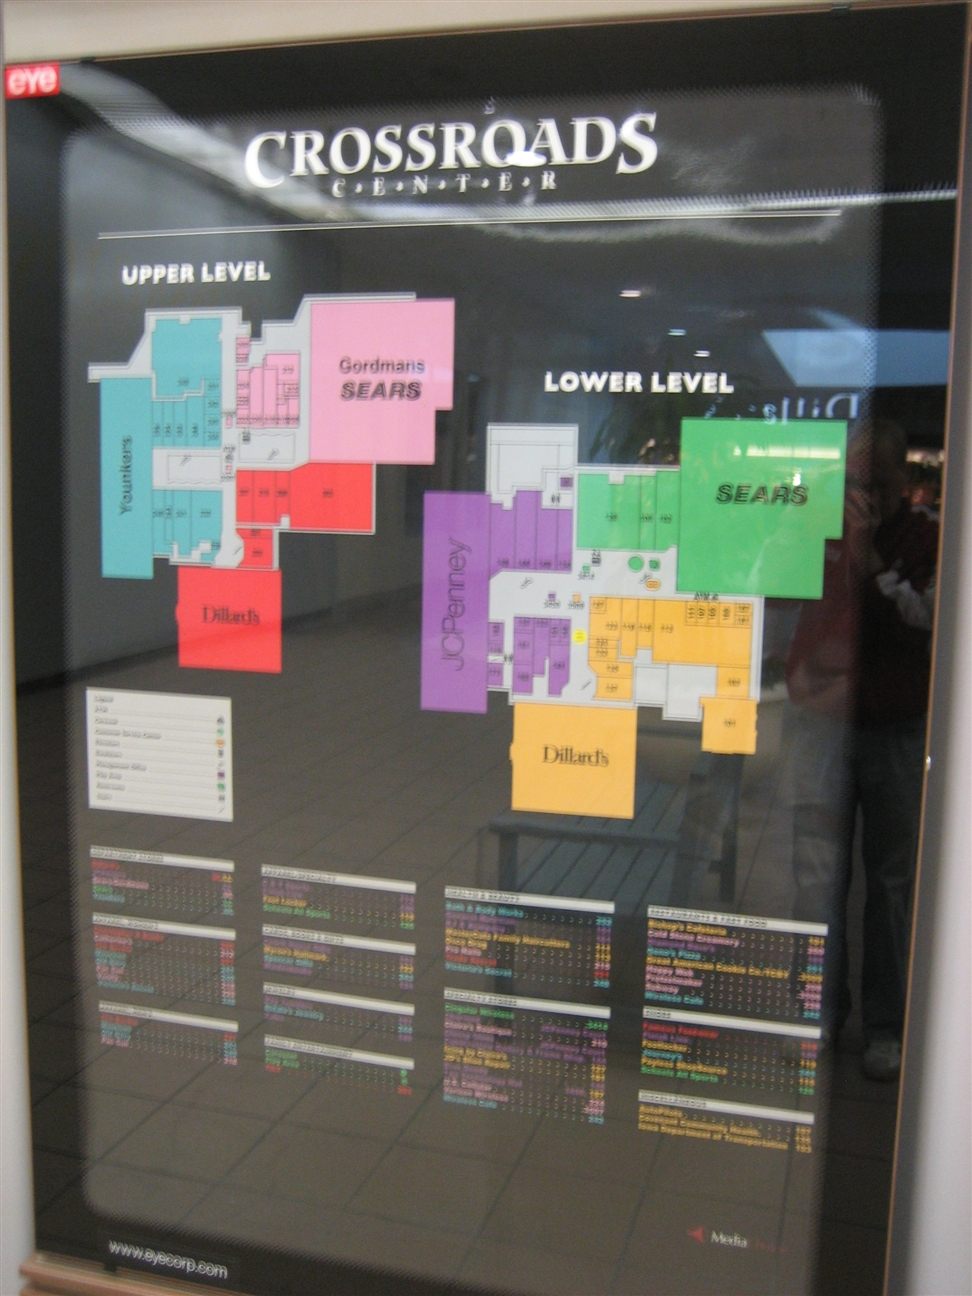 Crossroads Center directory in Waterloo, IA